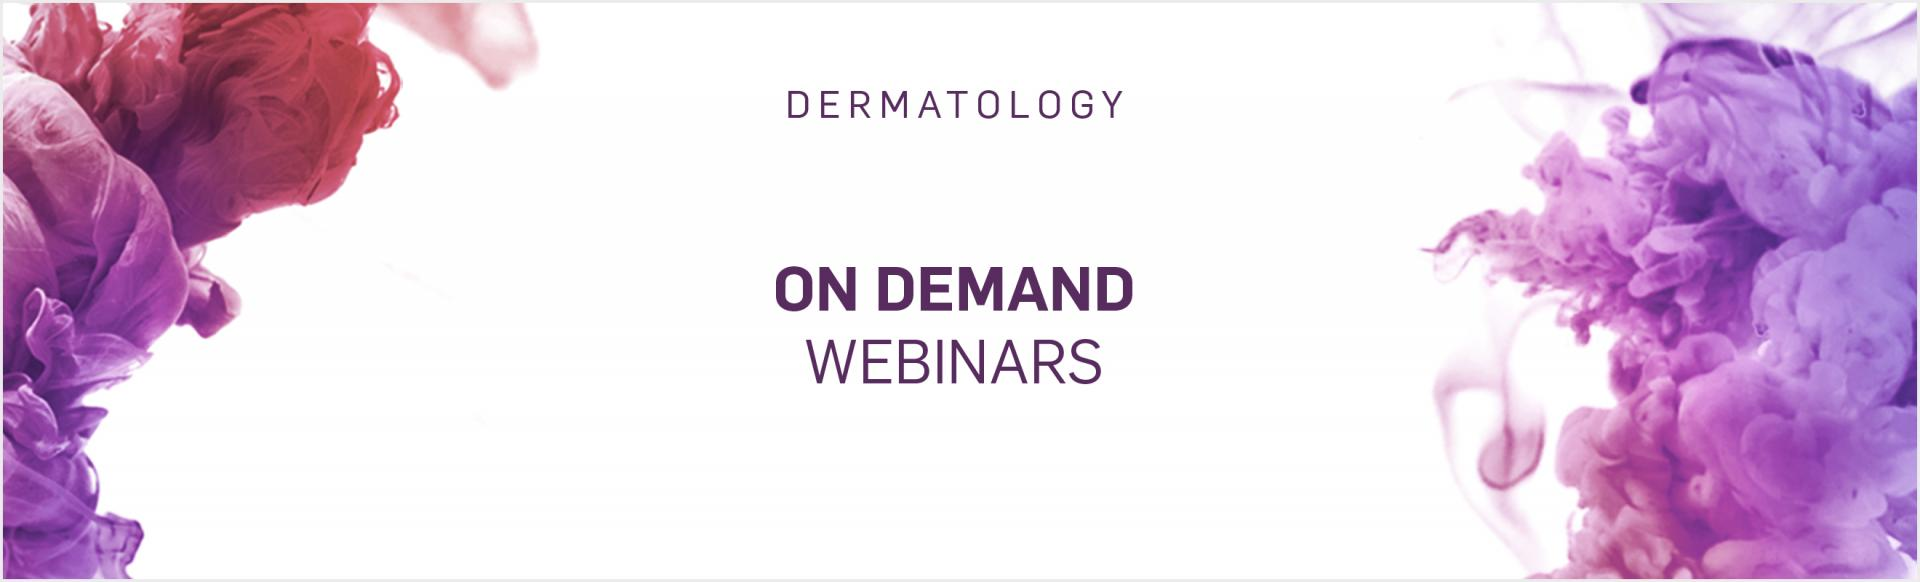 Top banner. Dermatology on demand webinars